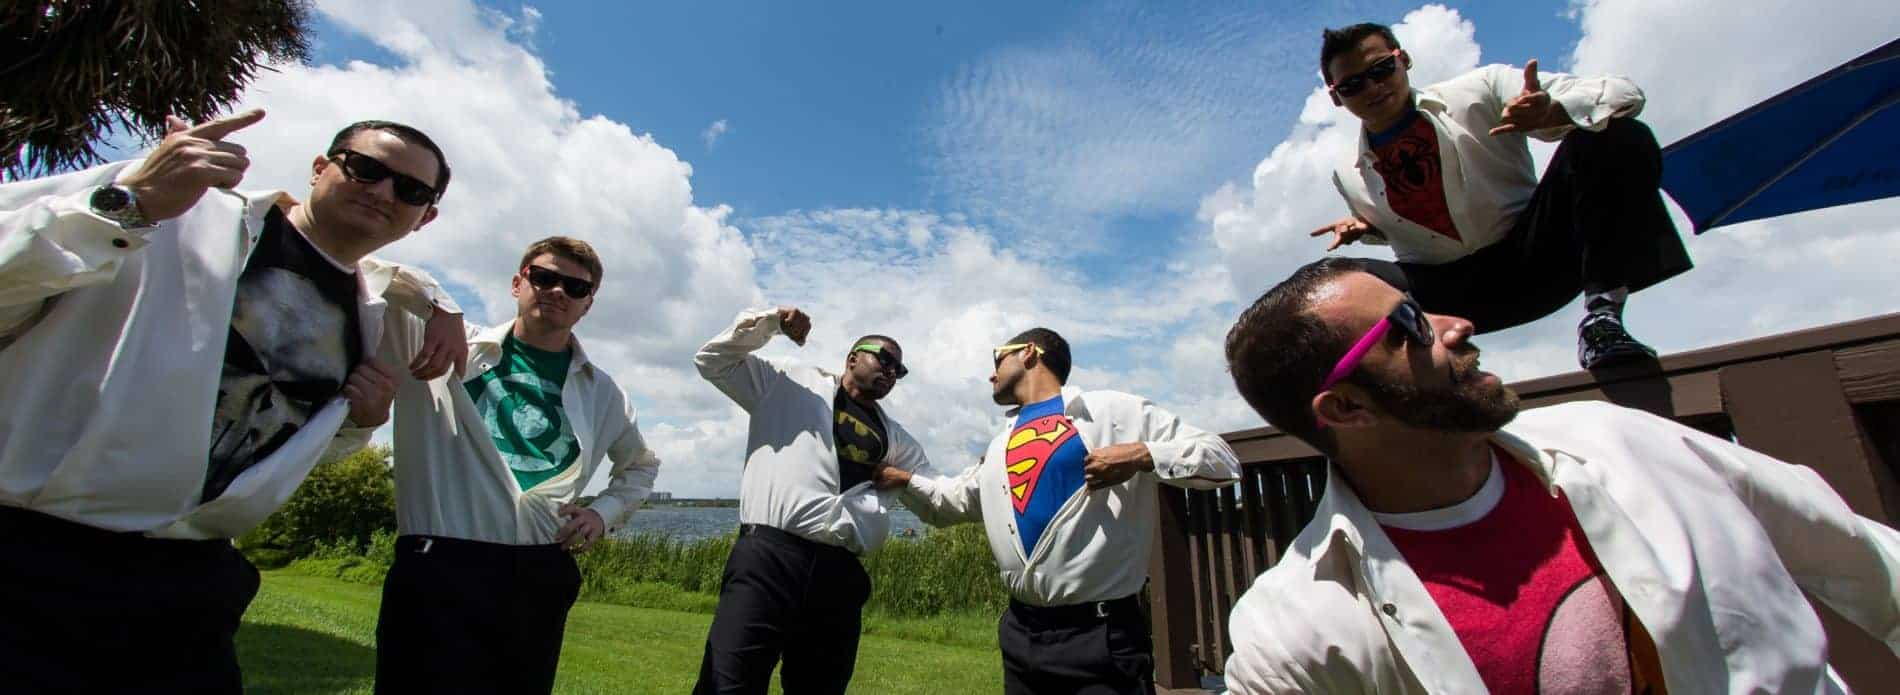 Groomsmen Superheros at a Metrowest Golf Club Wedding